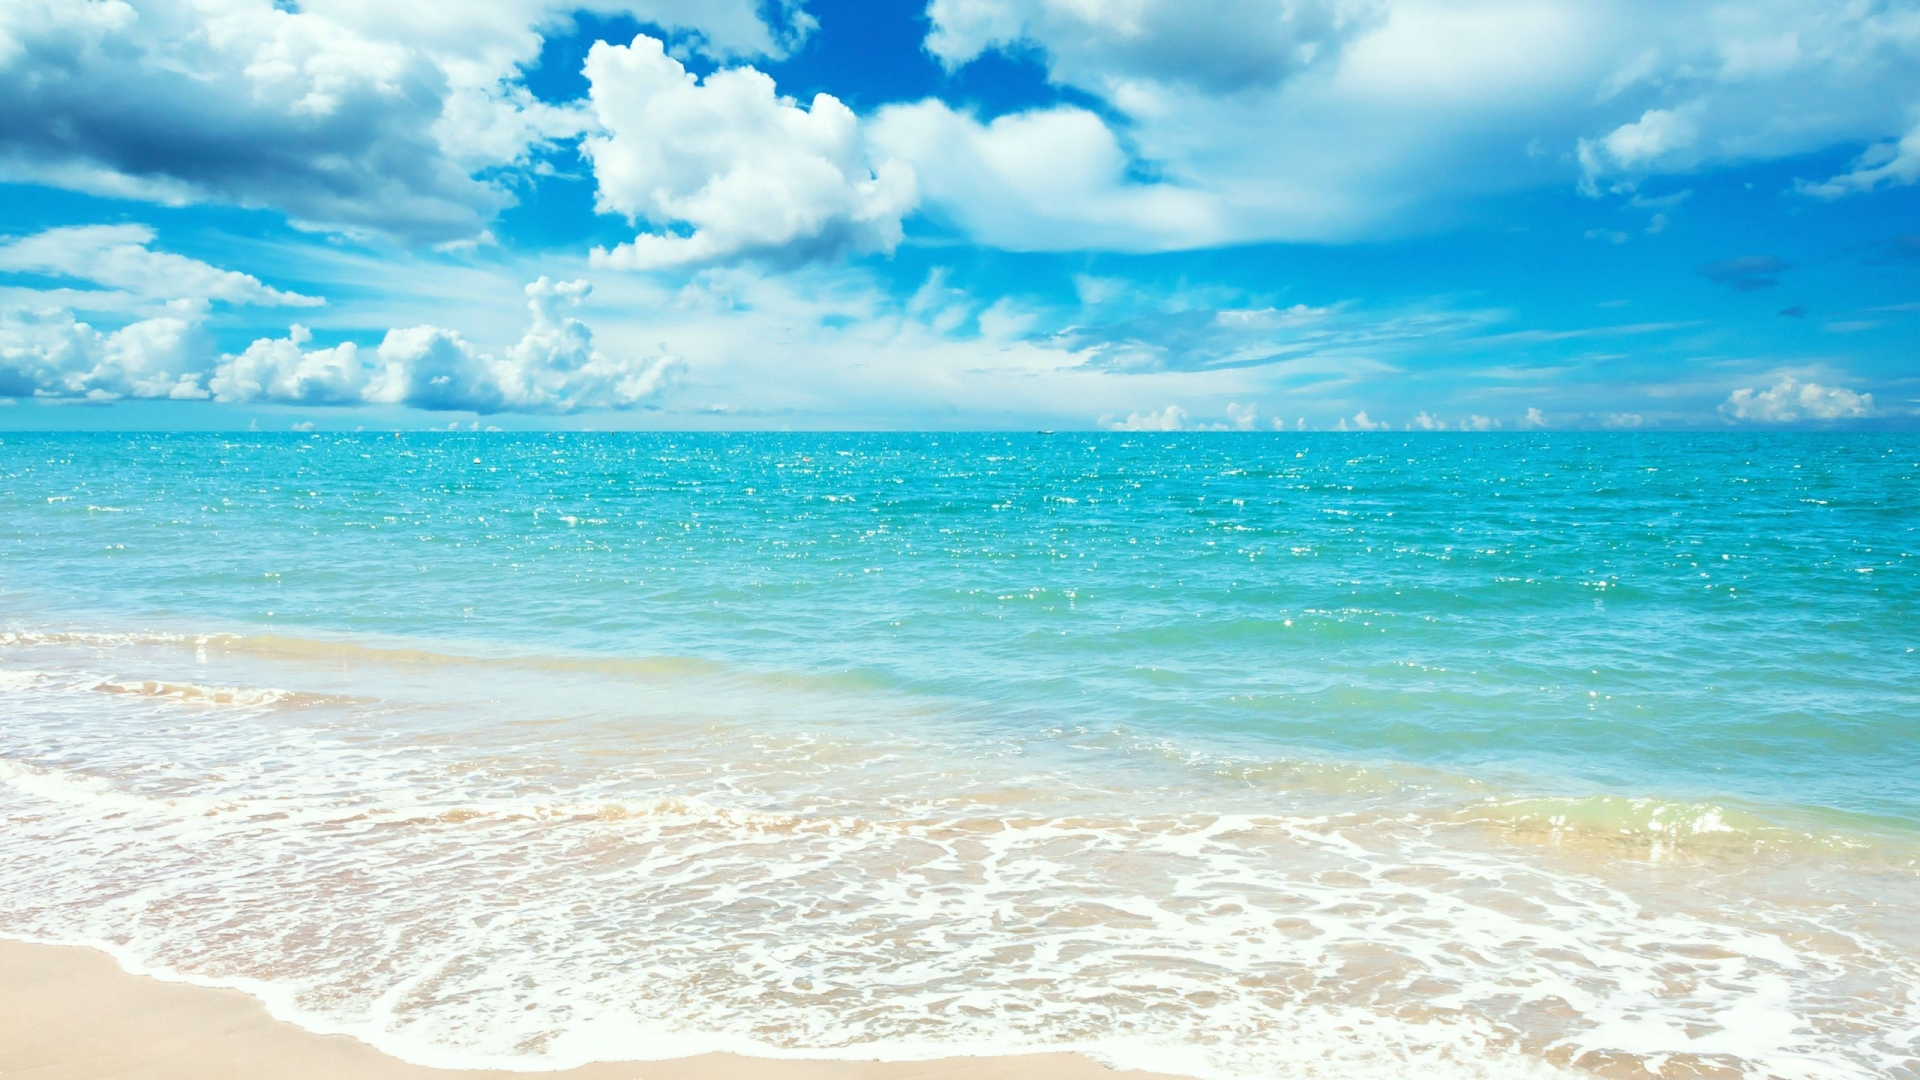 File name : free summer wallpaper hd widescreen